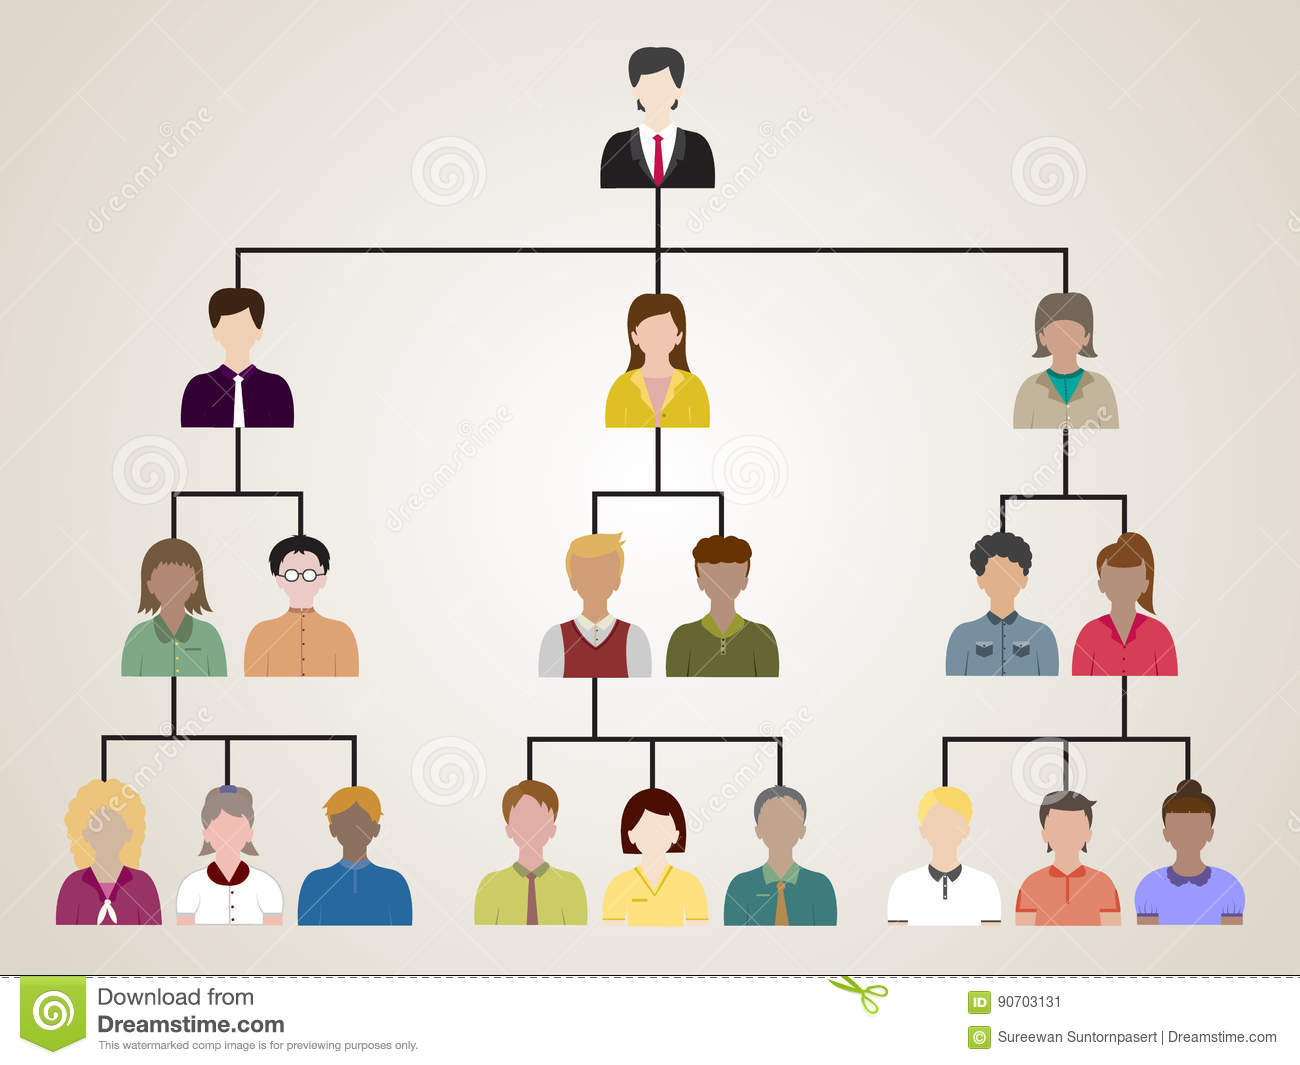 How organisational structure impacts on people in organisation